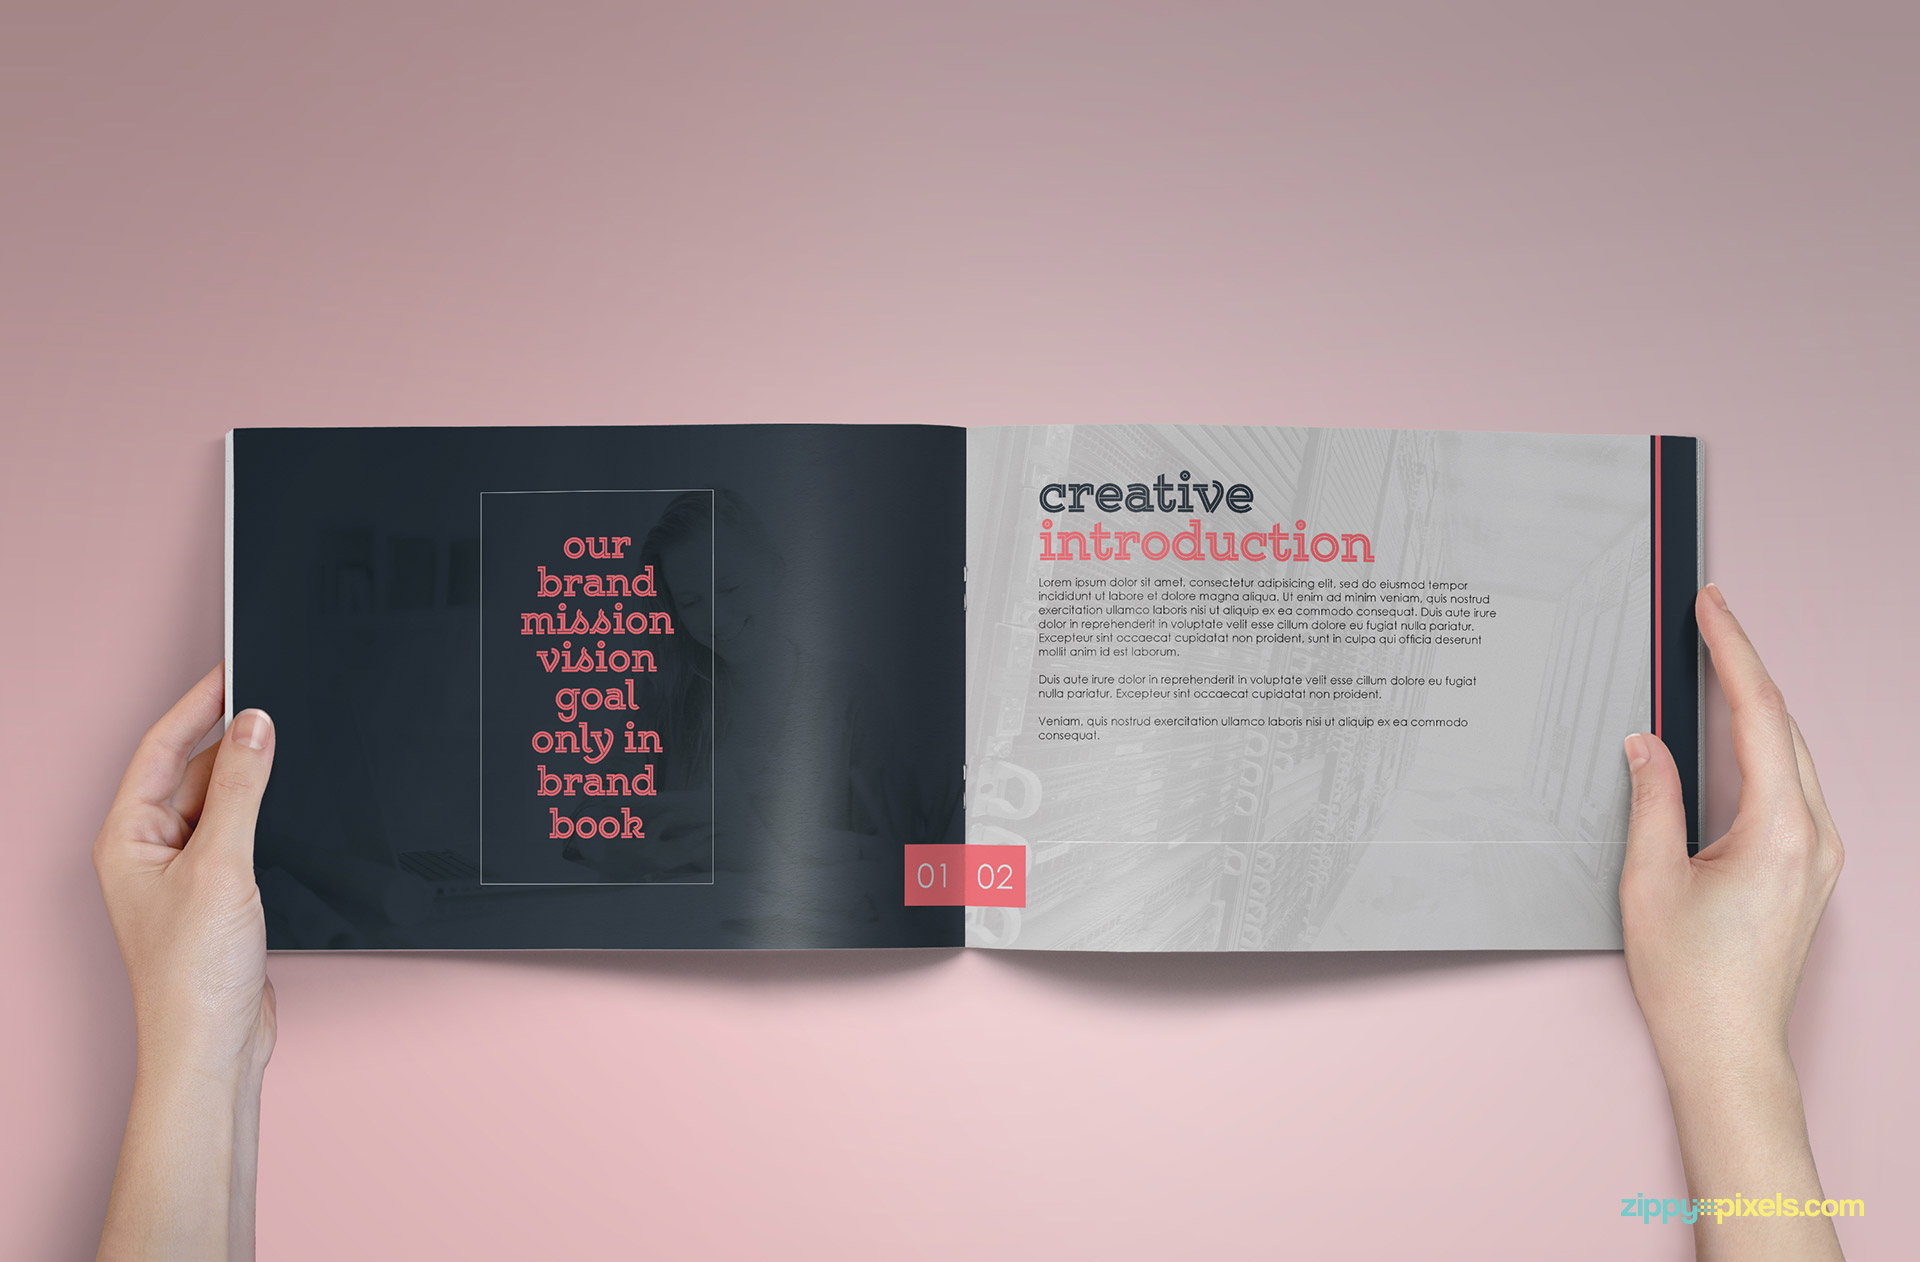 06-brand-book-8-creative-introduction